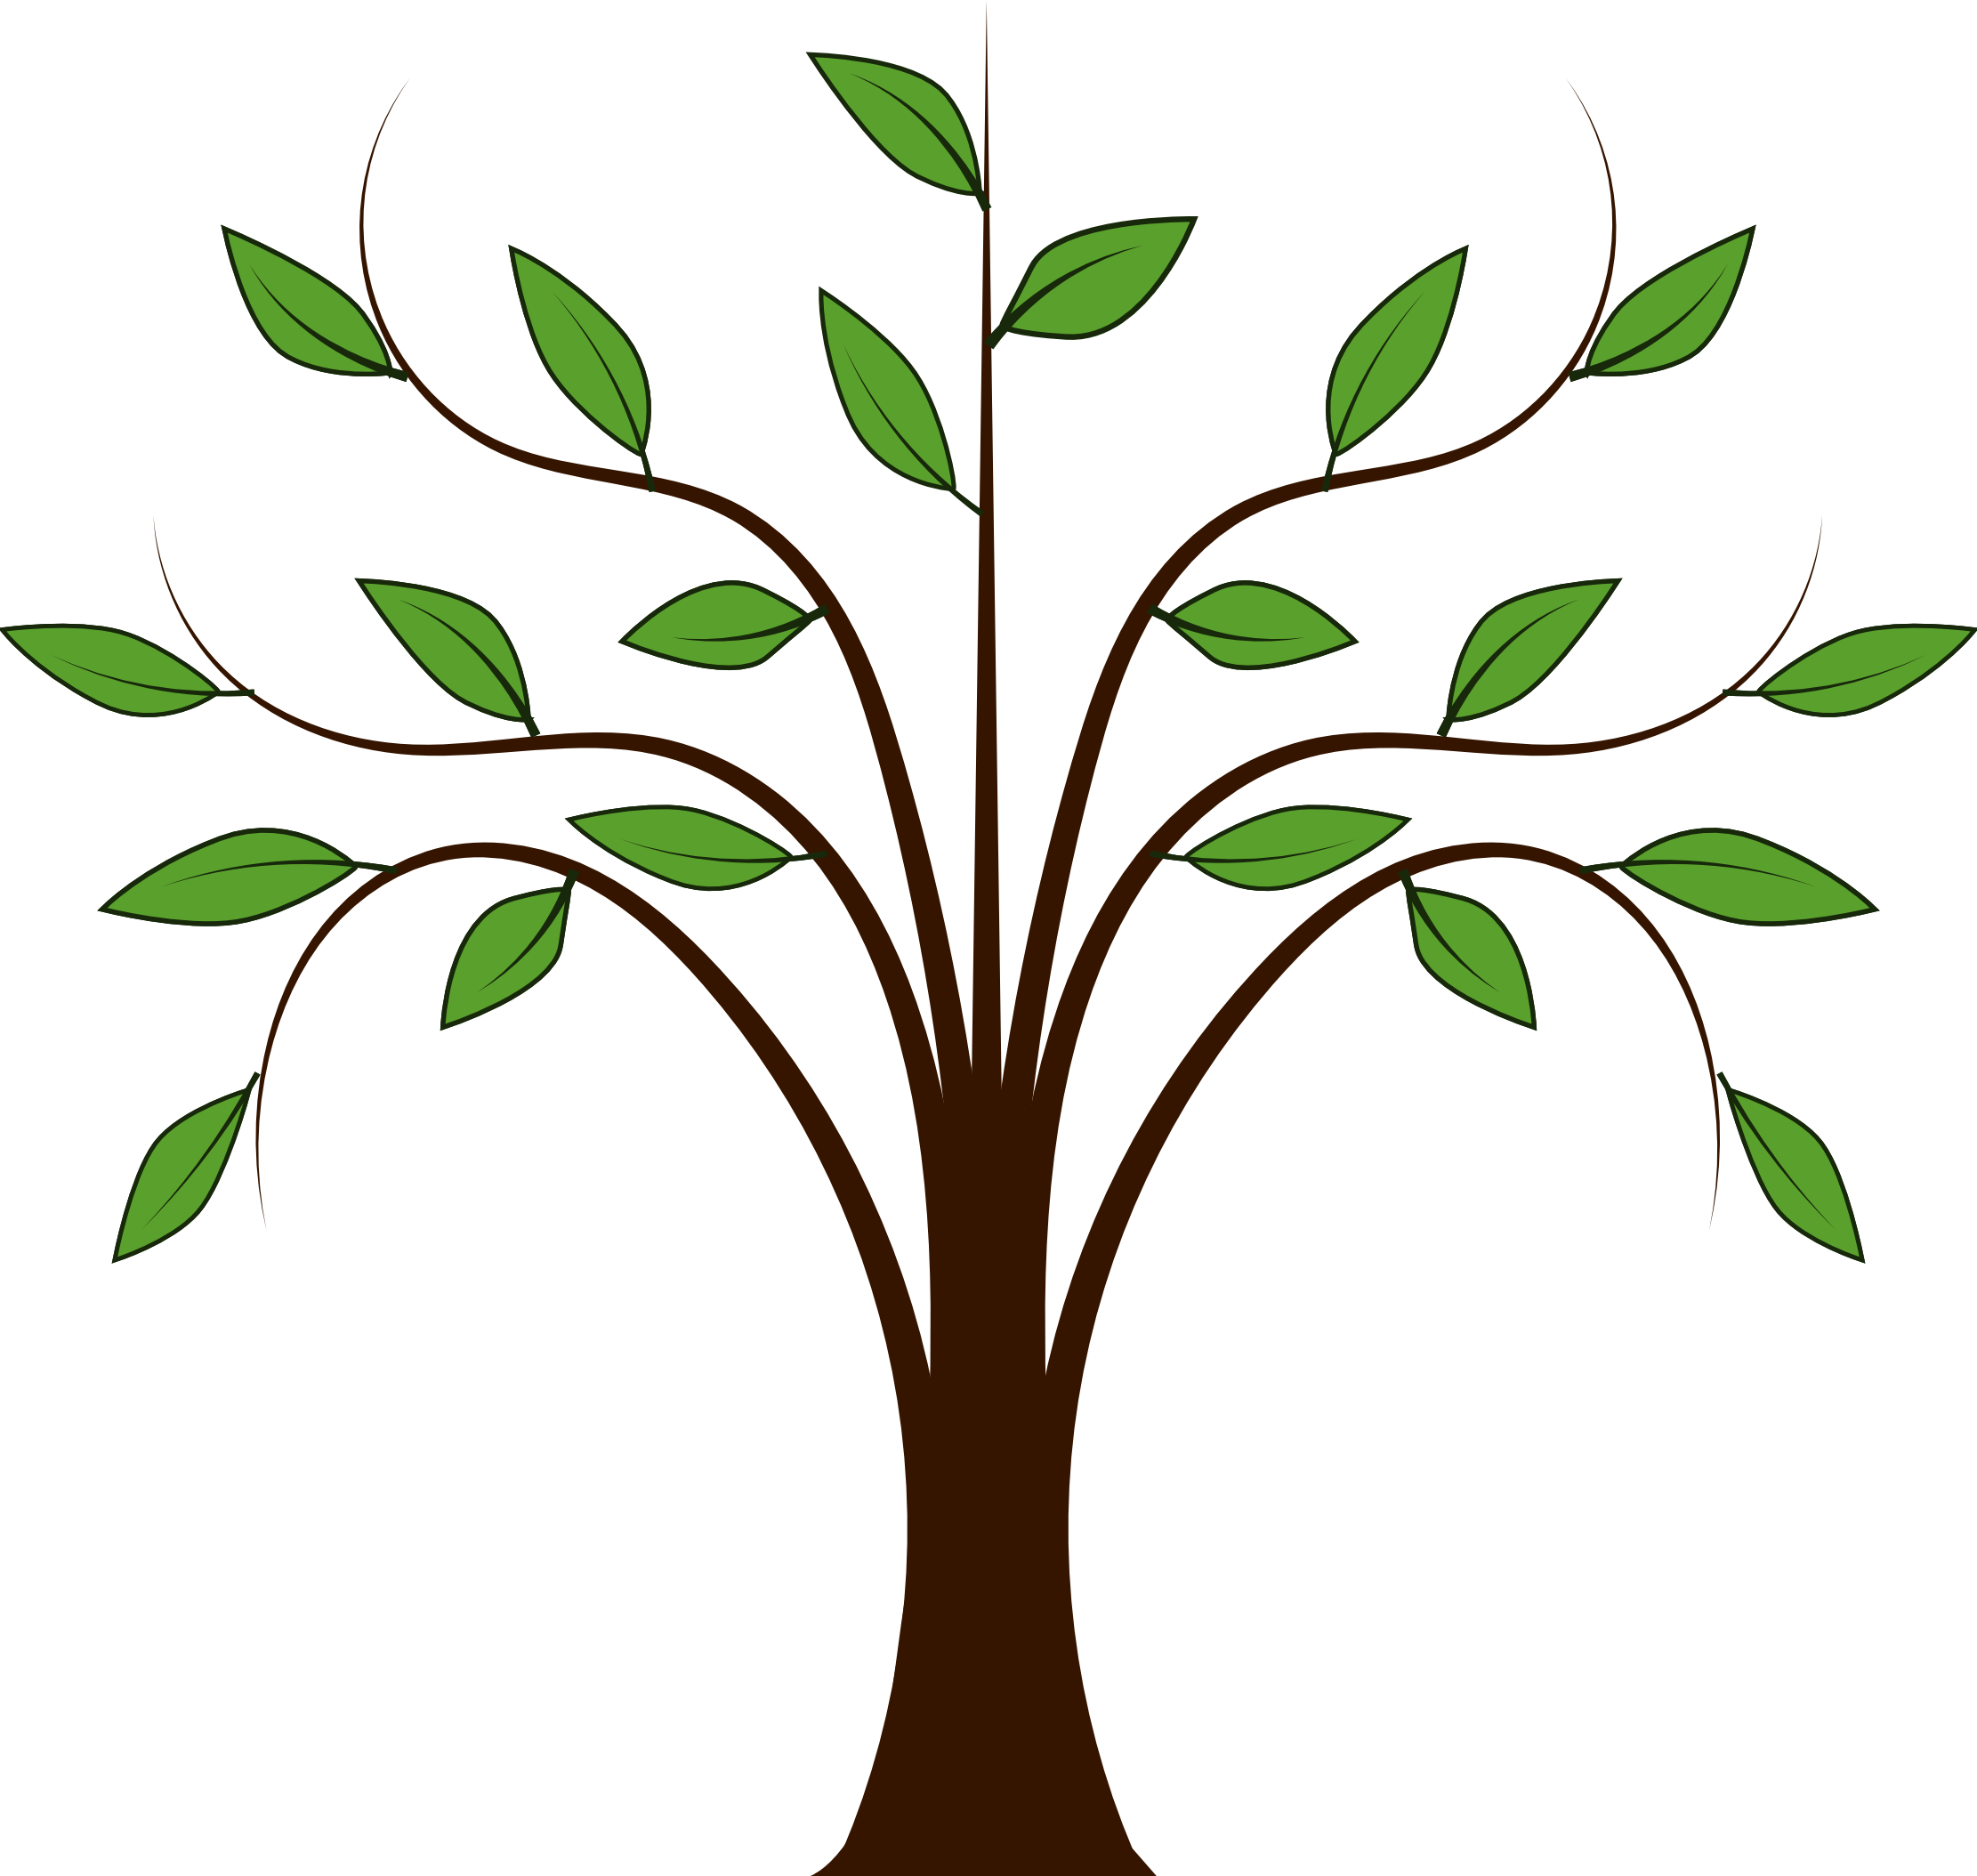 Free Tree Vector Png, Download Free Clip Art, Free Clip Art